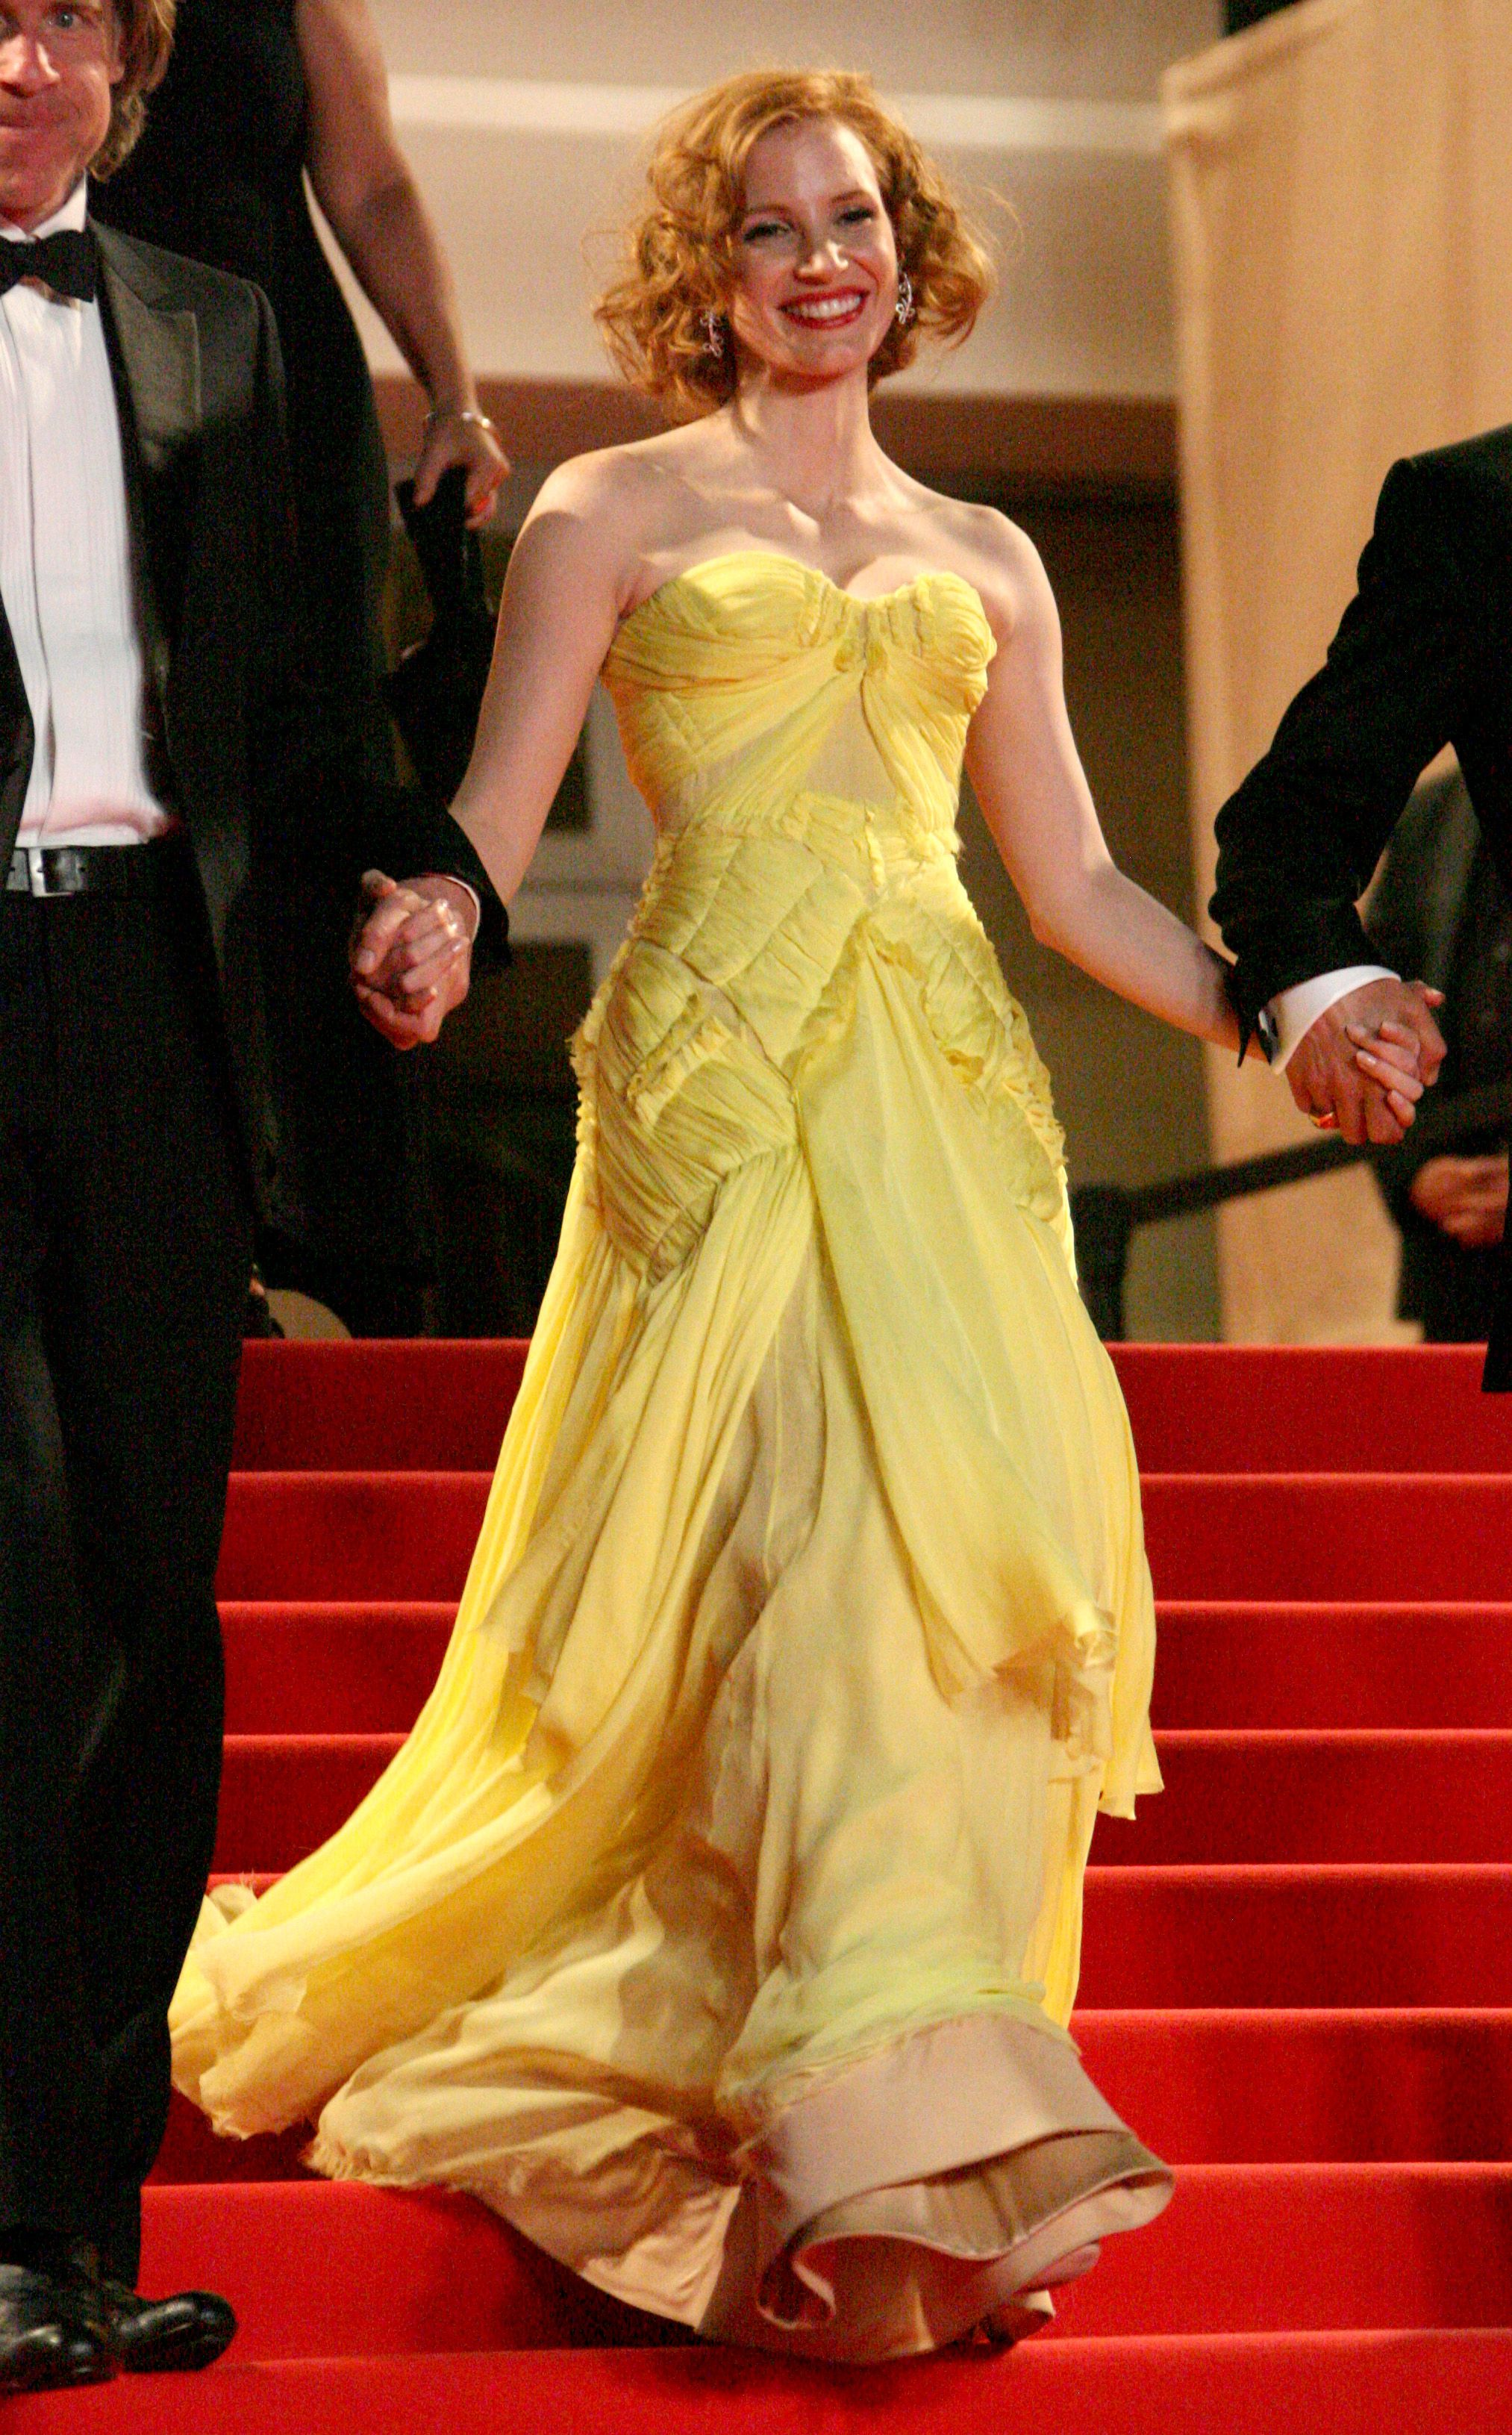 Jessica Chastain'Tree of Life' film premiere at the 64th Cannes Film Festival, Cannes, France - 16 May 2011